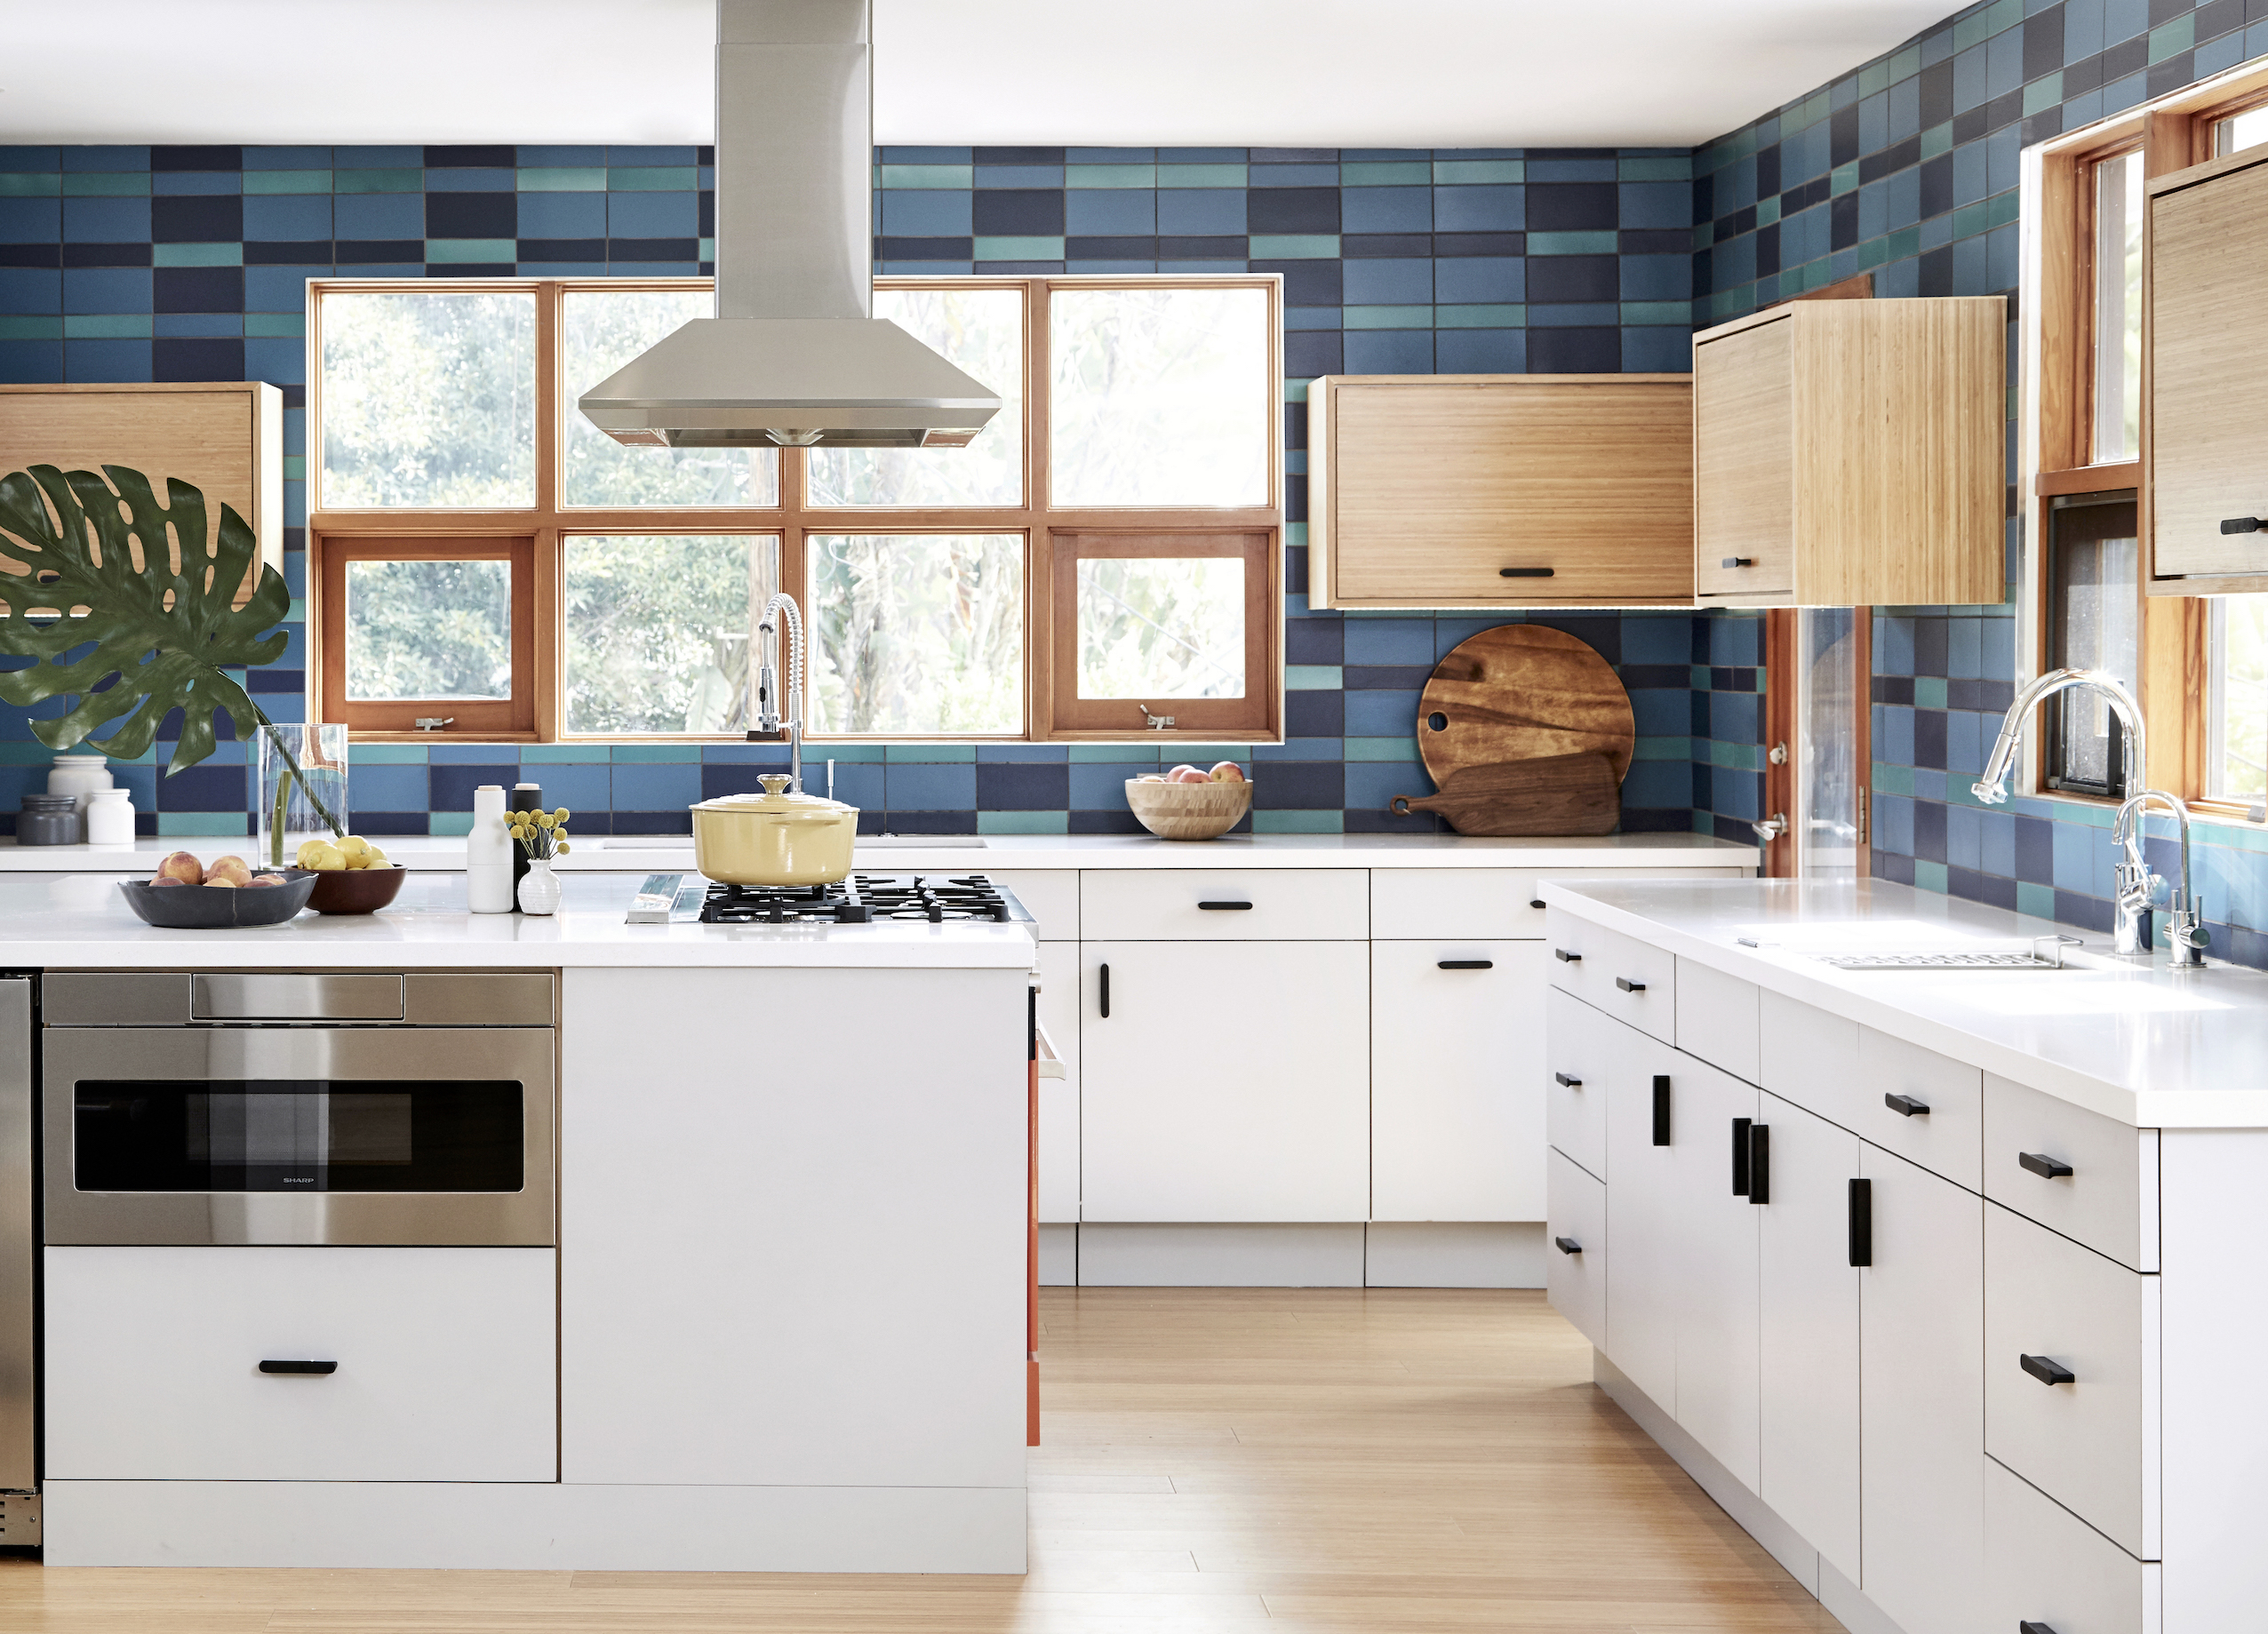 2017_q4_img_hi_res_rights_residential_the_niche_home_jenna_Peffley_photo_ceramic_kitchen_backsplash_plaid_peacock_2x8_4x8_fluorite_2x8_4x8_blue_velvet_2x8_4x8_blend_FC207276_1.jpg?mtime=20181029151929#asset:423579